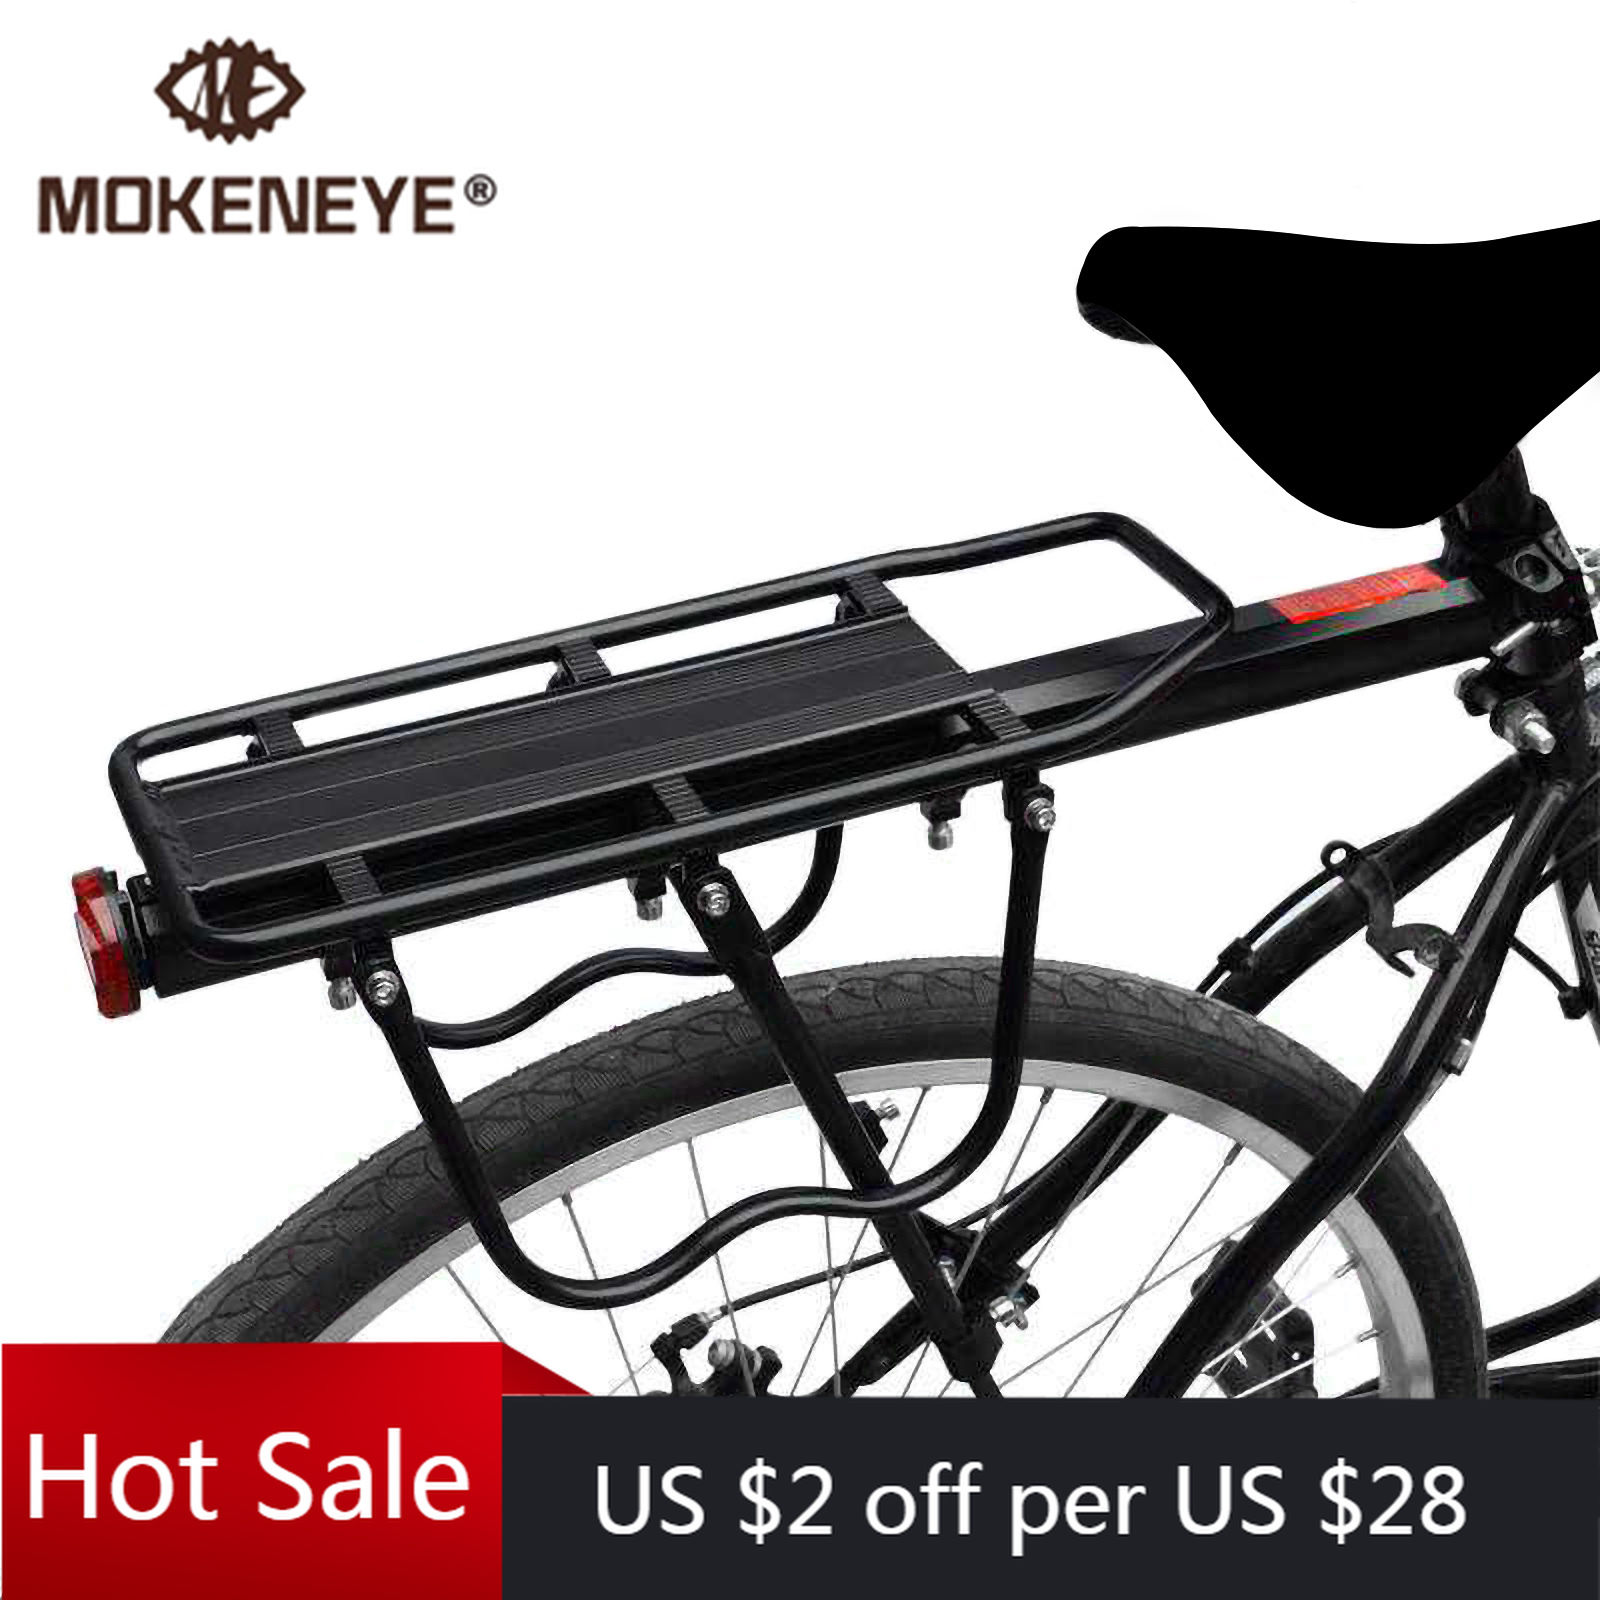 20-29 Inch Bicycle Carrier Bike Luggage Cargo Rear Rack Aluminum Alloy Shelf Sad